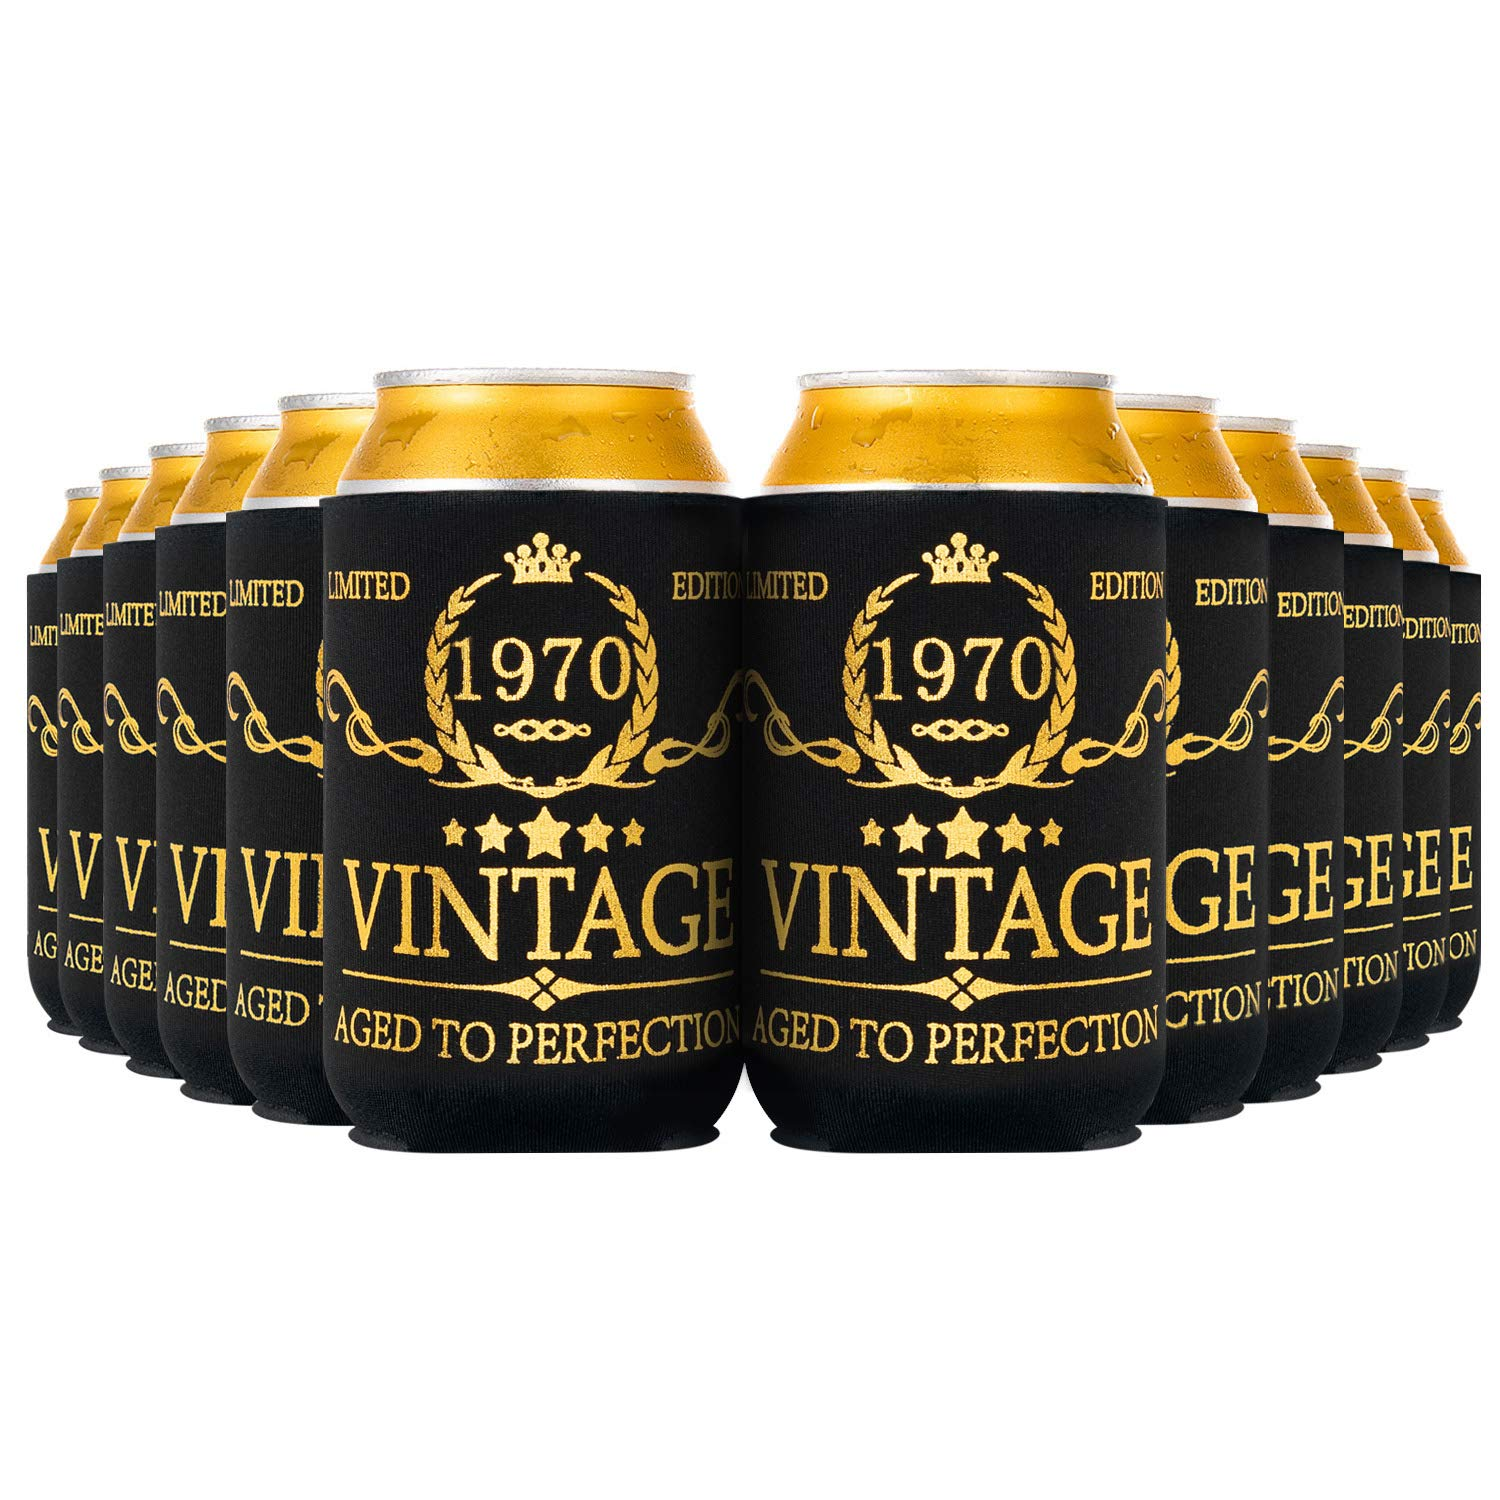 Crisky Vintage 1970 Can Coolers 50th Birthday Beer Sleeve Party Favor 50th Birthday Decoarions Black and Gold, Can Insulated Covers Neoprene Coolers for Soda, Beer, Beverage